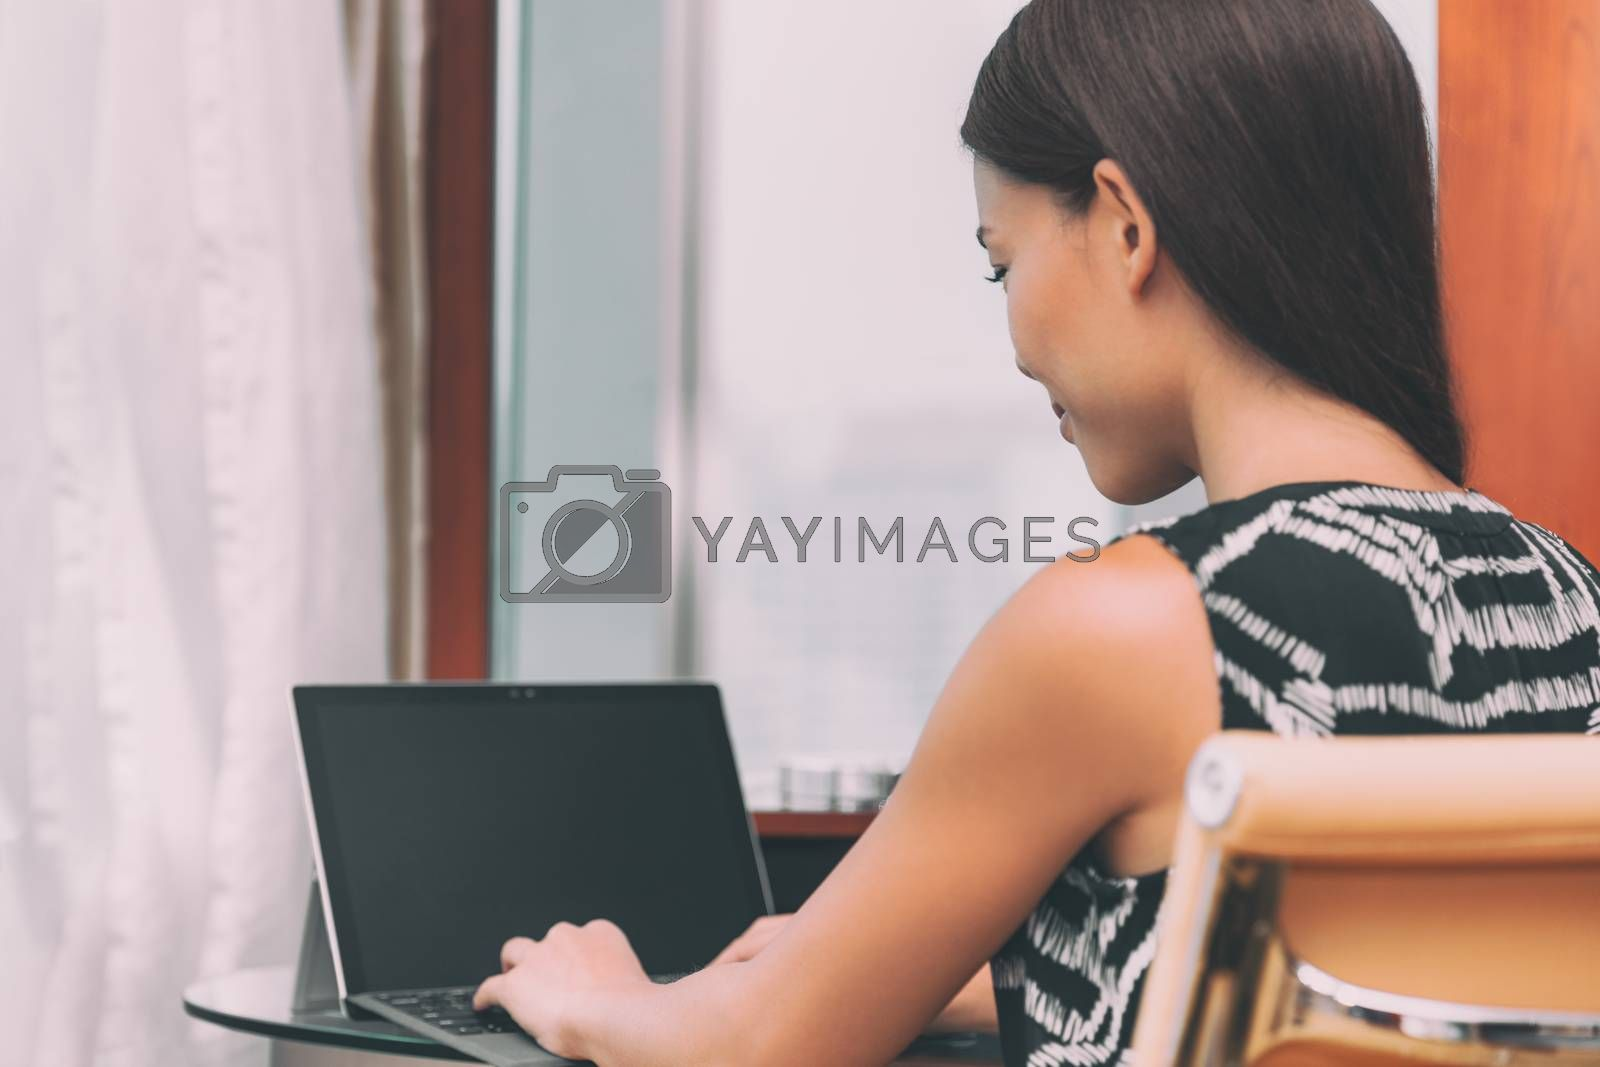 Working from home remote work freelance worker employee woman typing using laptop computer online communication for small business. Businesswoman at home office desk.